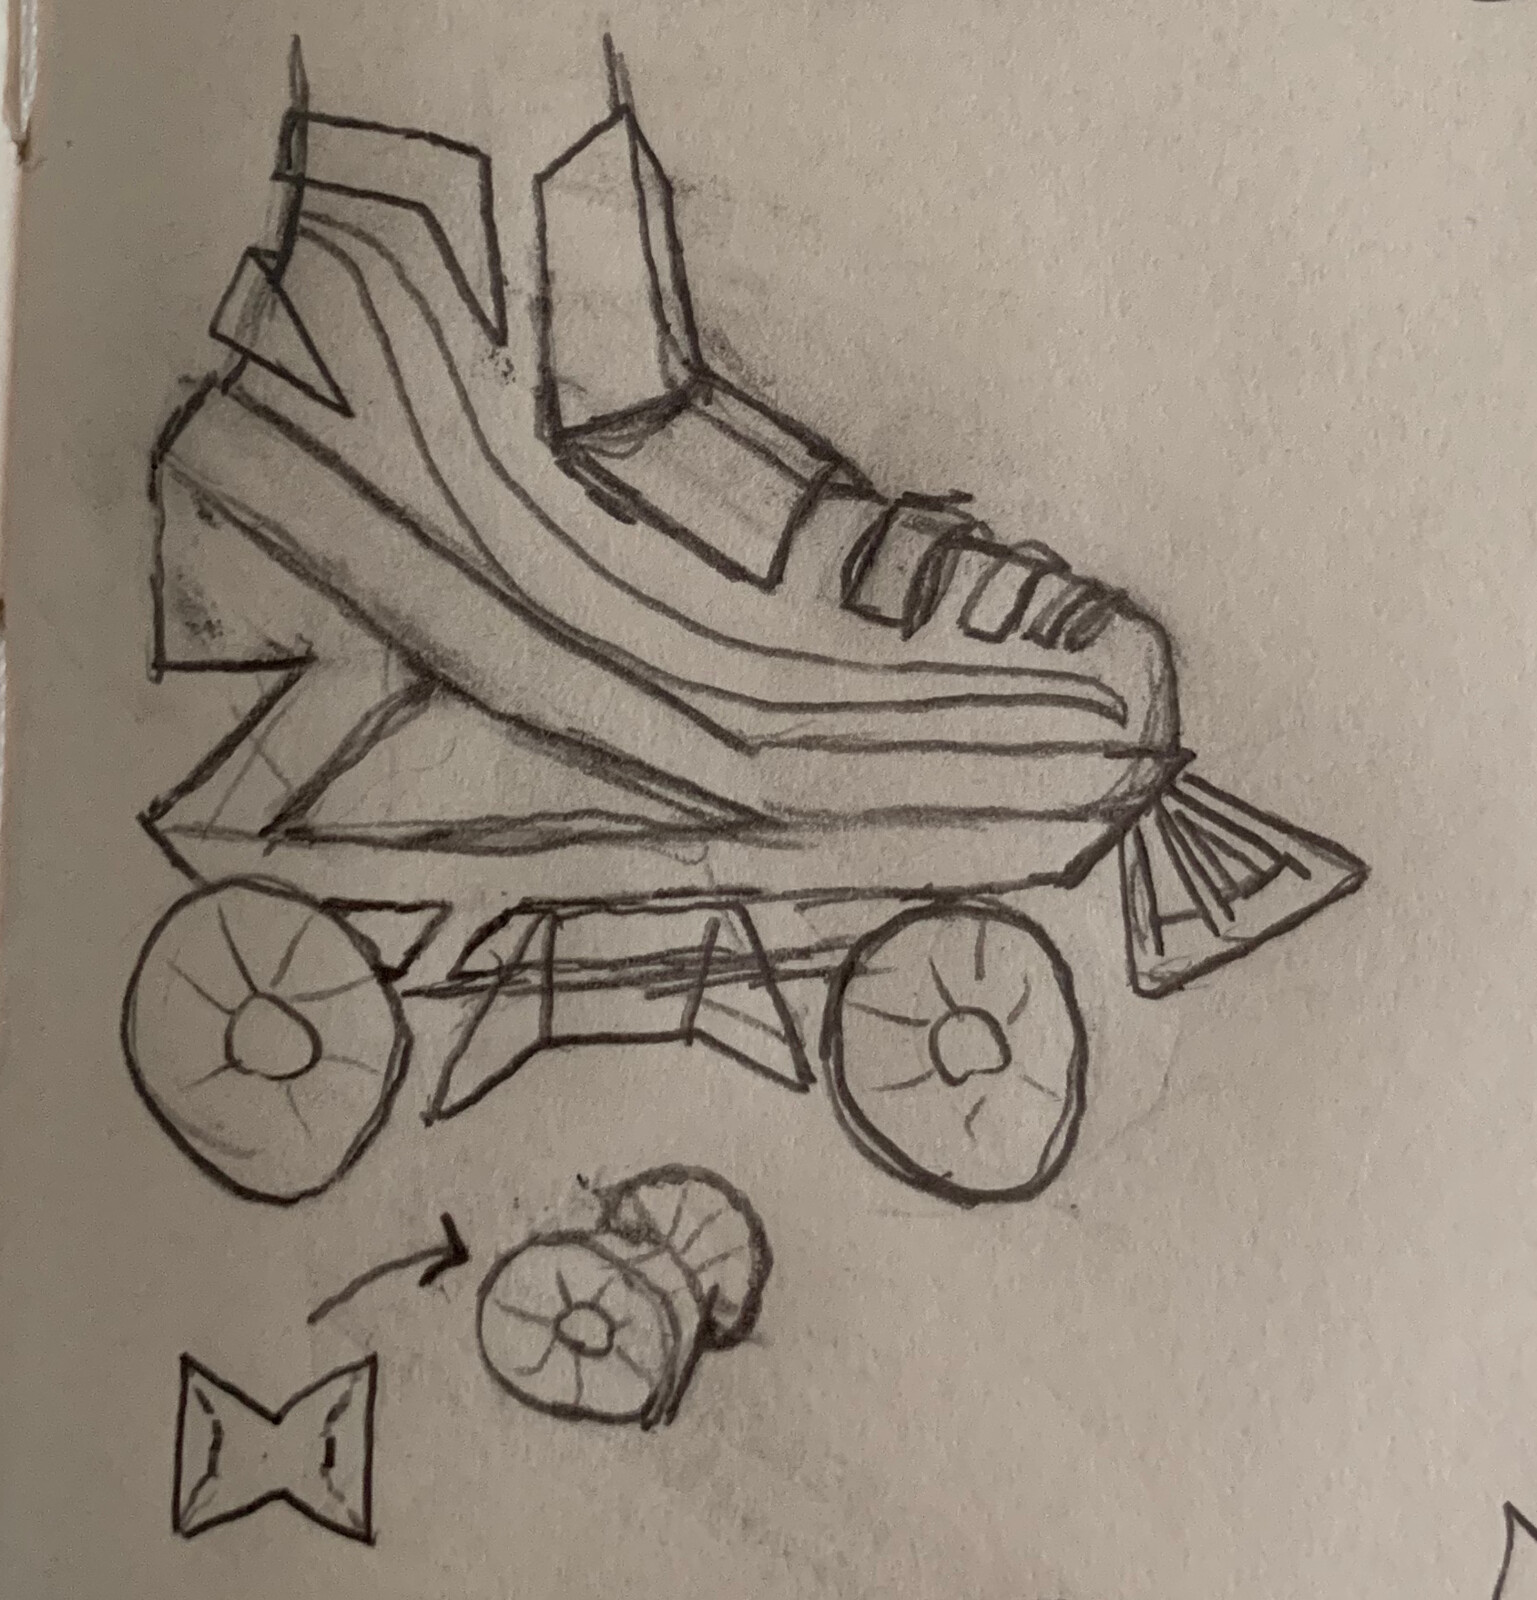 My concept art for the skate. Things didn't change much.